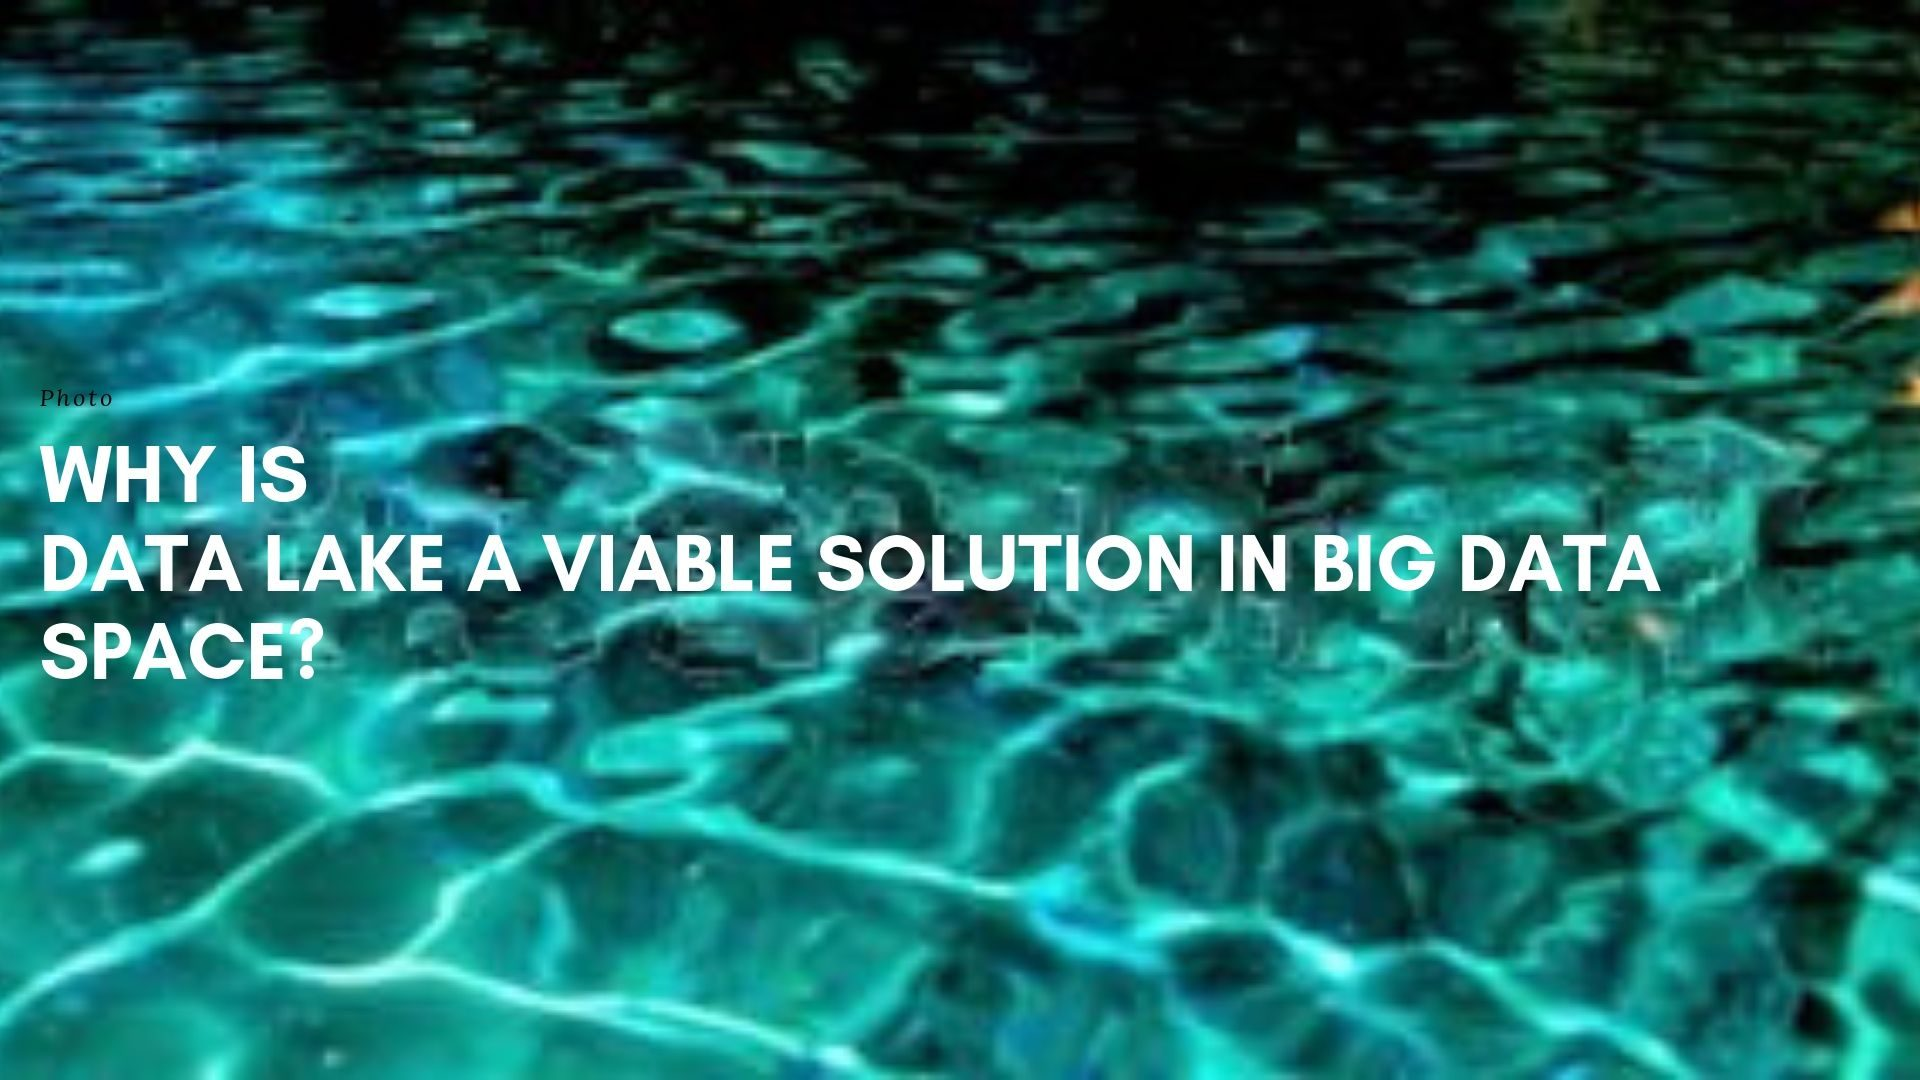 Data Lake a Viable Solution in Big data Space